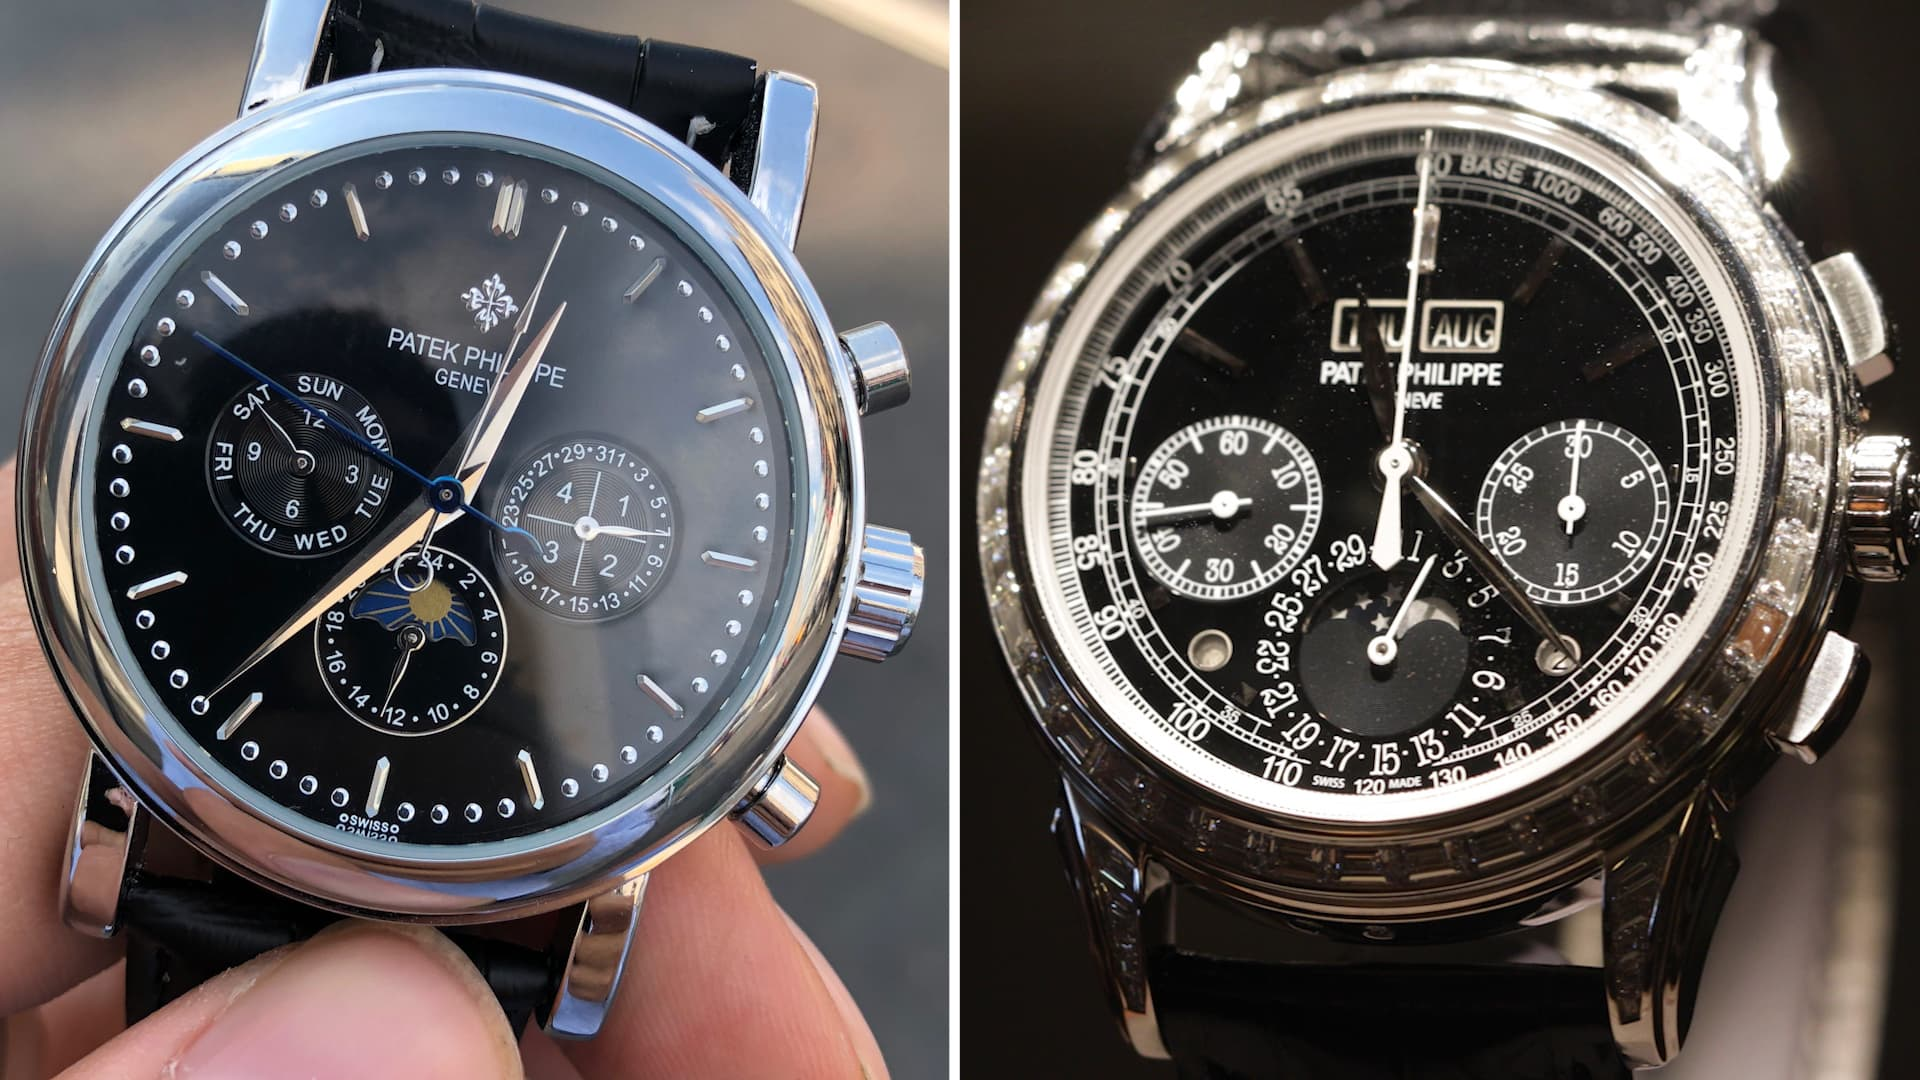 I shopped for a $260,000 Patek Philippe and compared a $60